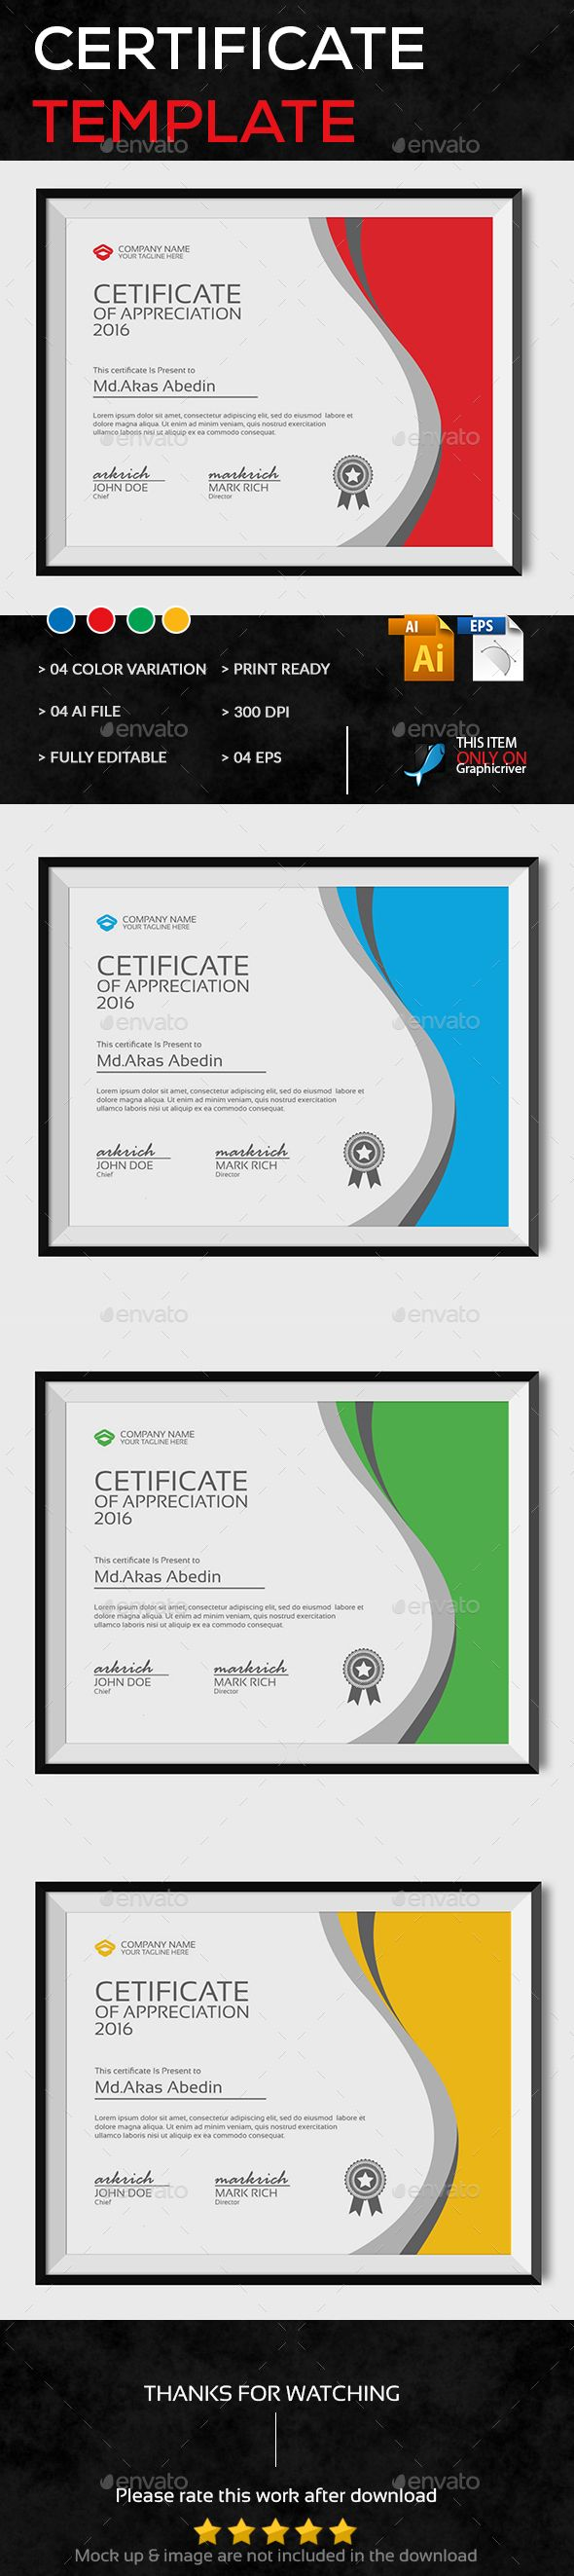 Certificate Template - Certificates Design Template Vector EPS, AI Illustrator. Download here: https://graphicriver.net/item/certificate-template/17430643?ref=yinkira